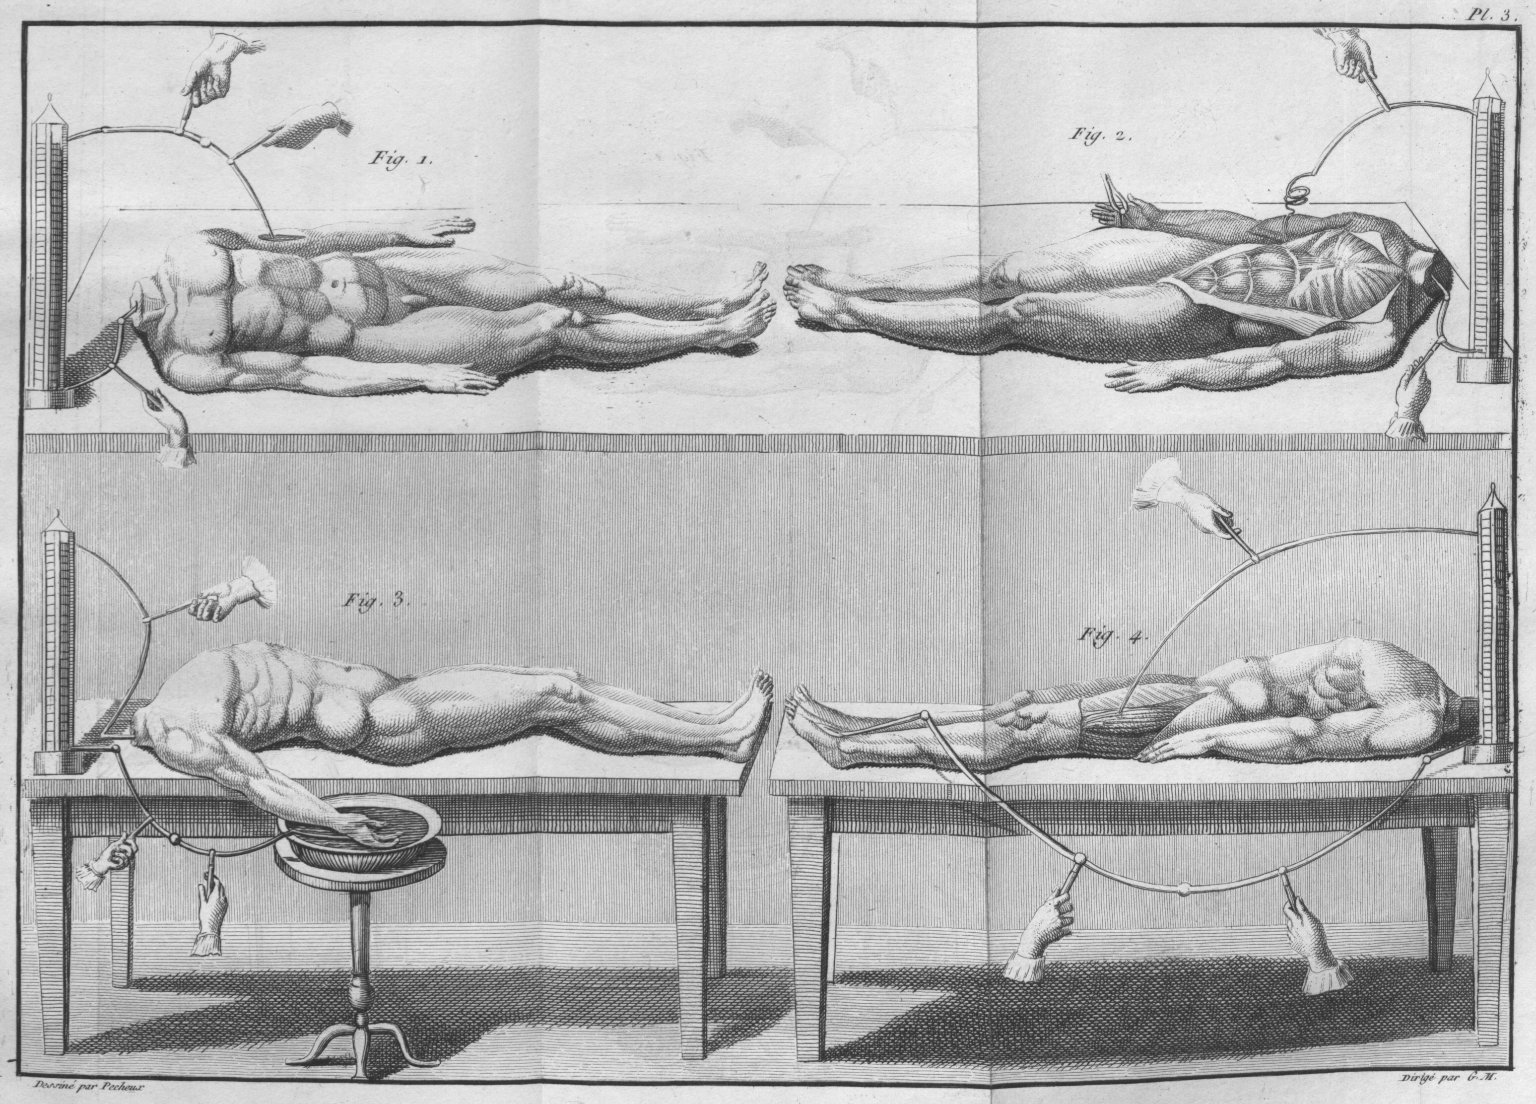 Experiments with headless cadavers